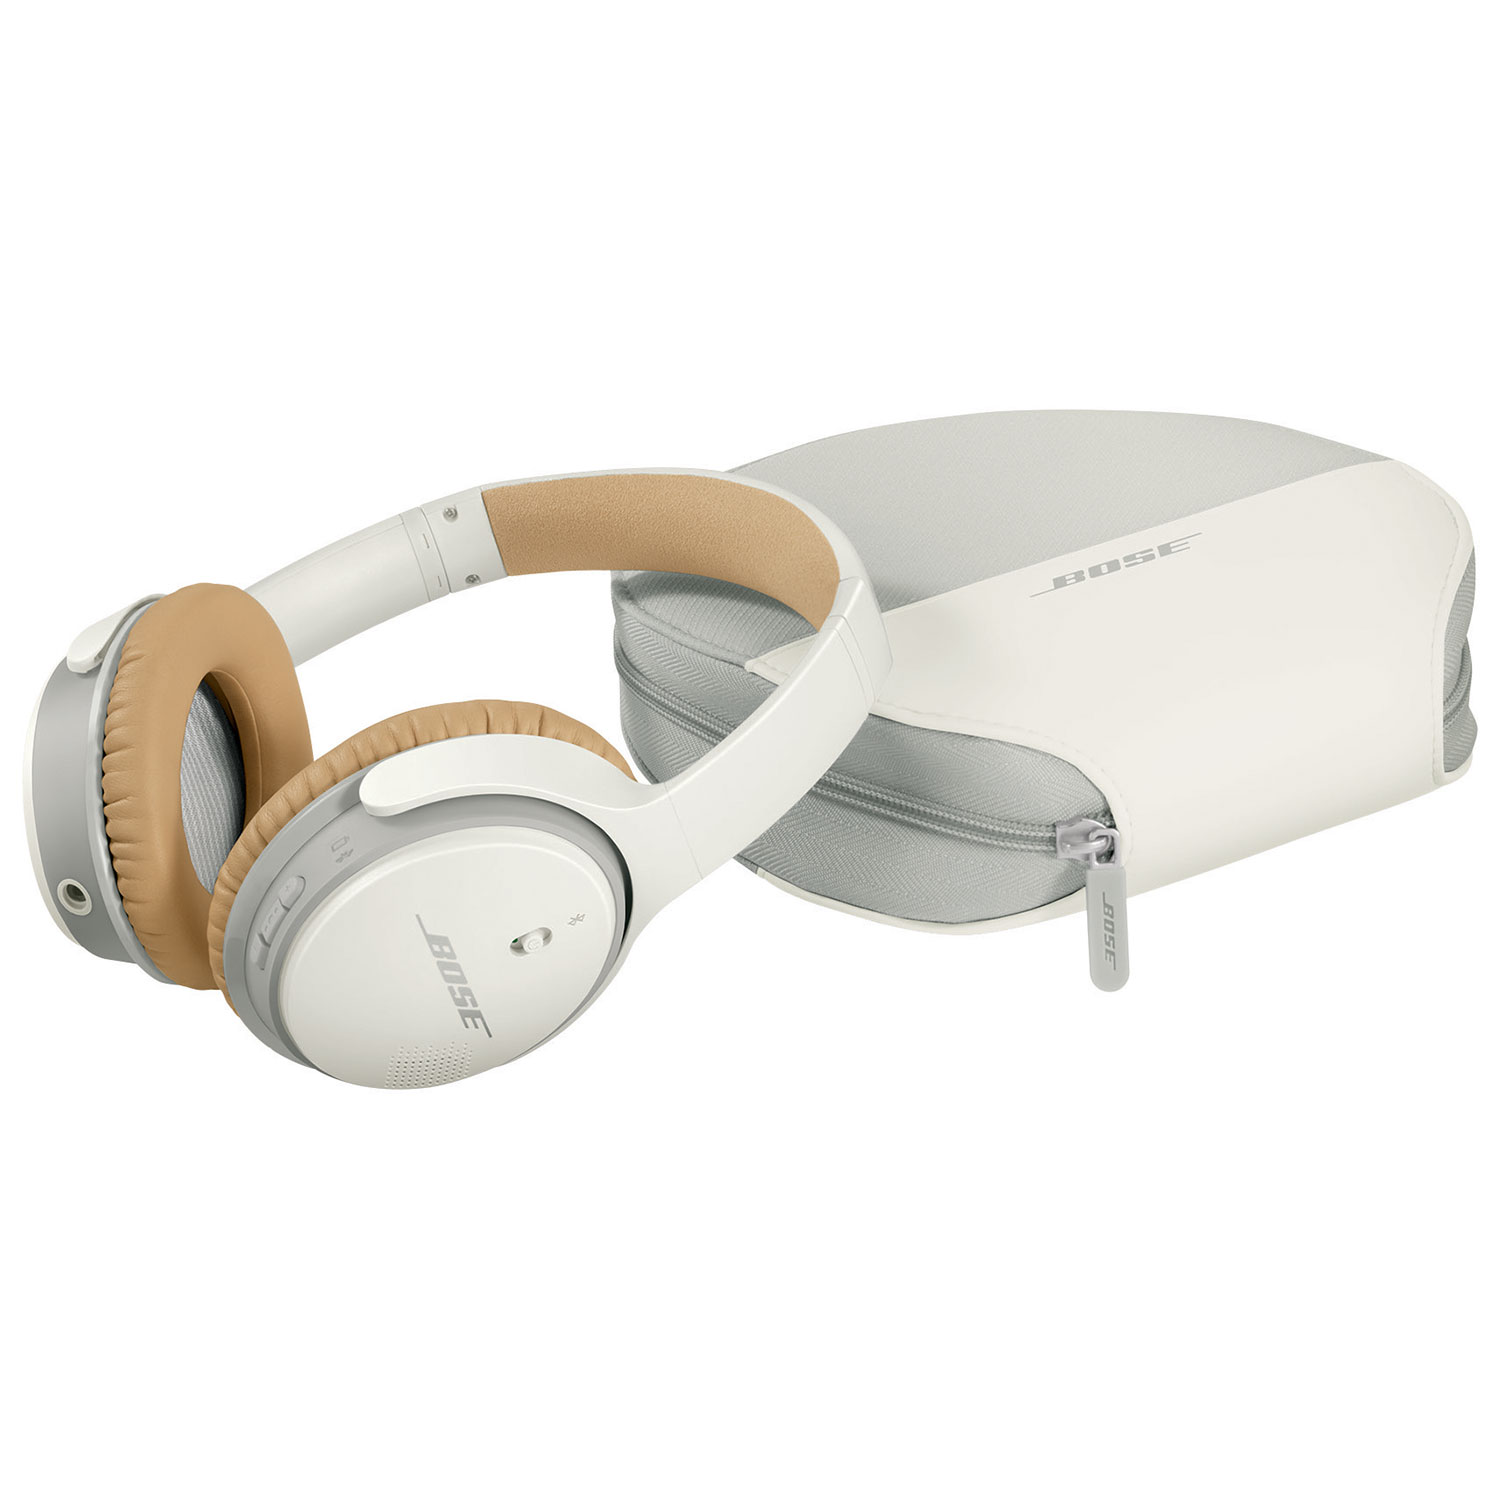 Bose SoundLink II Over-Ear Wireless Headphones with Mic - White ...